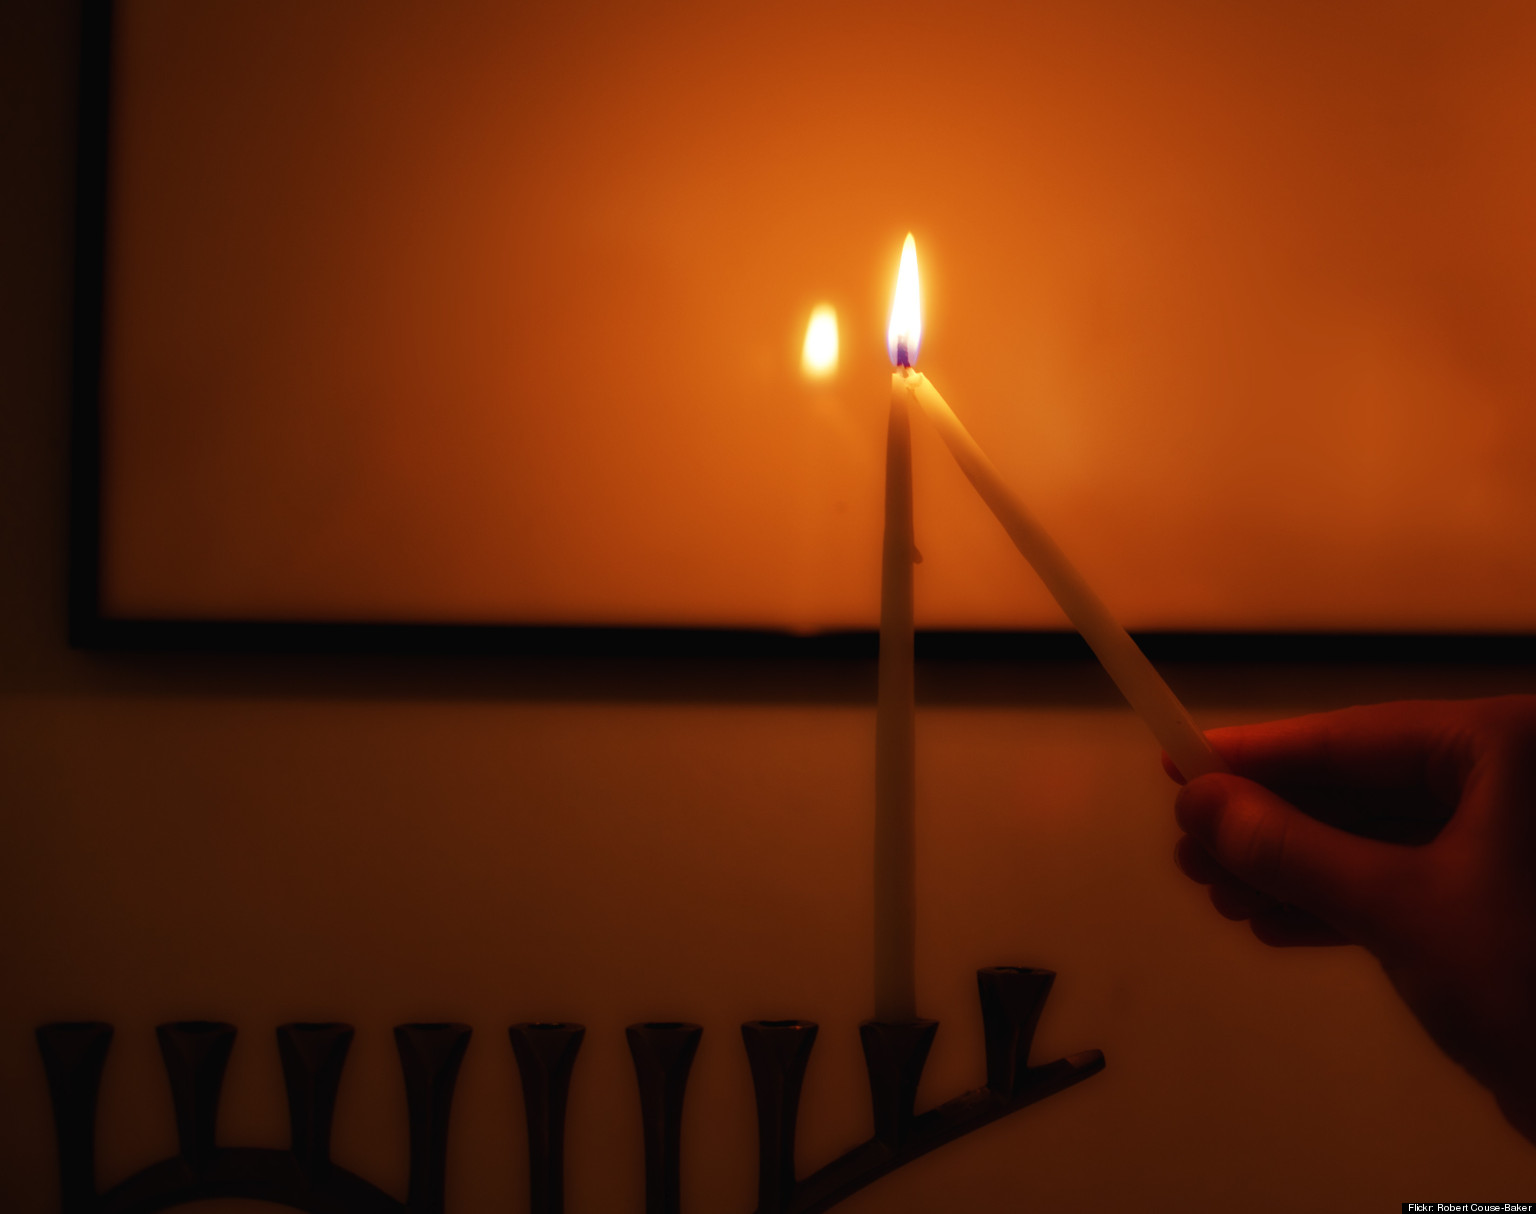 Hanukkah Quotes 8 Inspirational Sayings About The Miracle Of Light   HuffPost & Hanukkah Quotes: 8 Inspirational Sayings About The Miracle Of ... azcodes.com